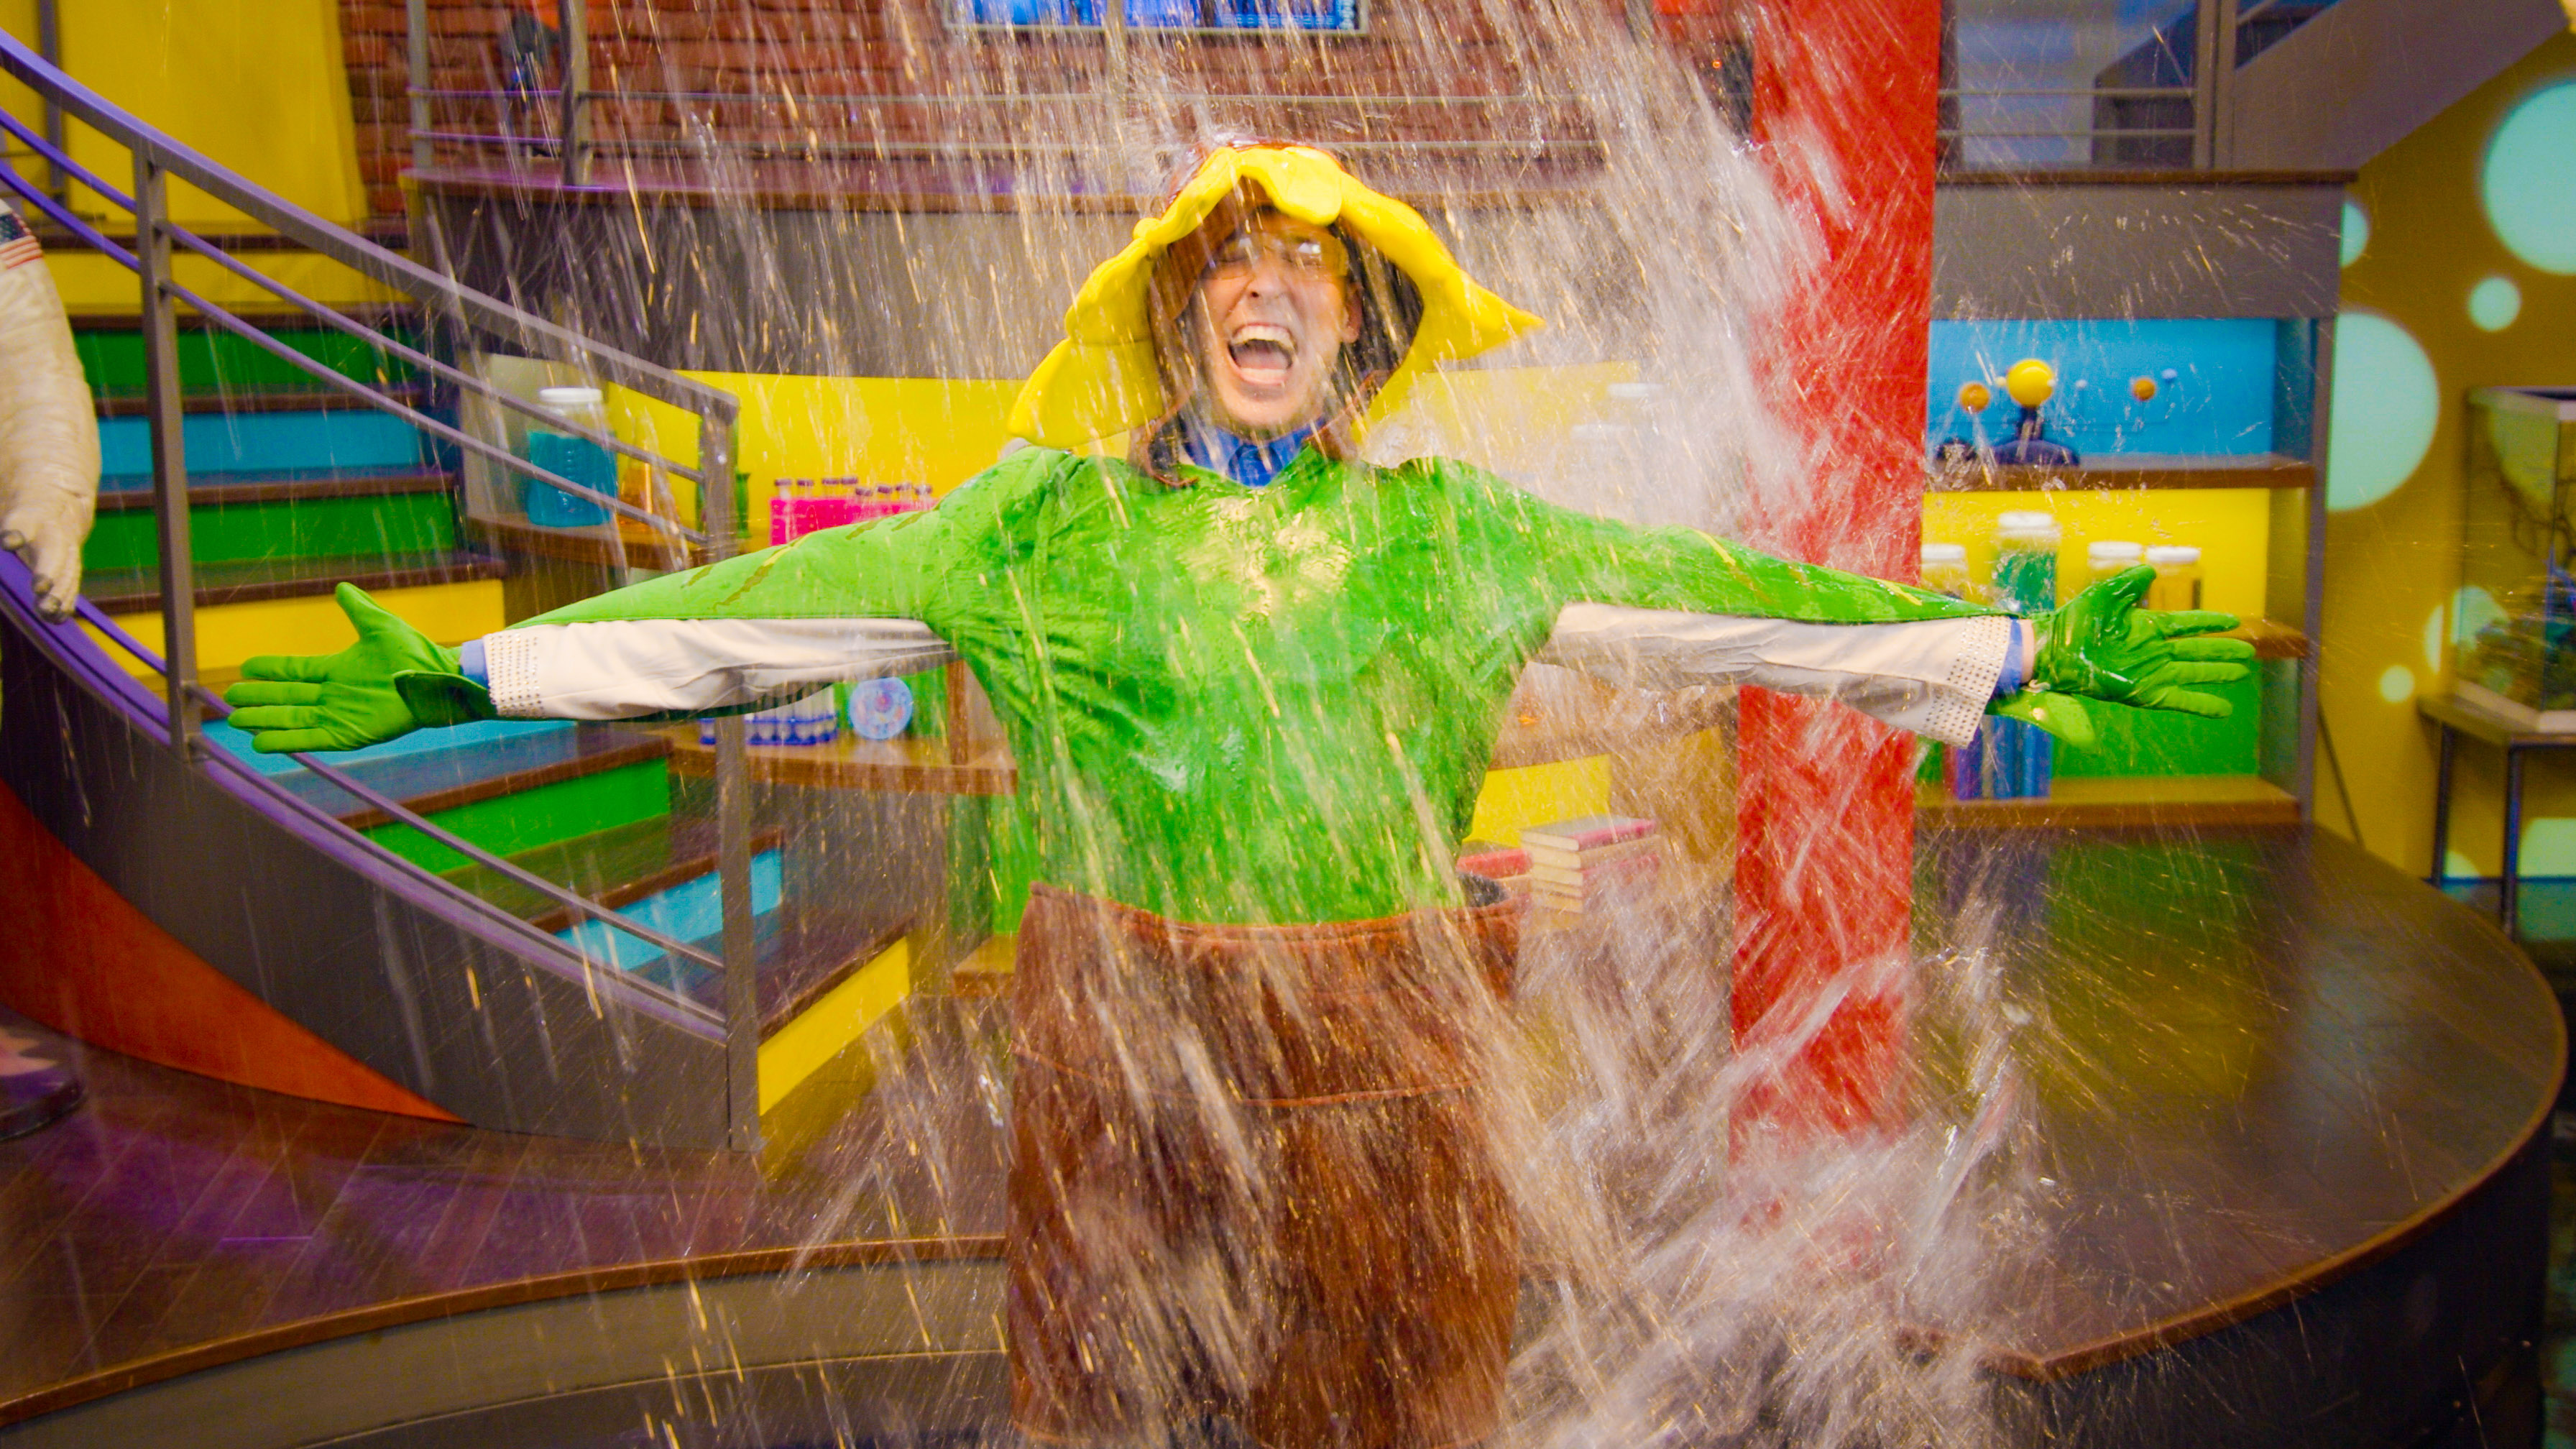 man in a plant suit gets drenched in water